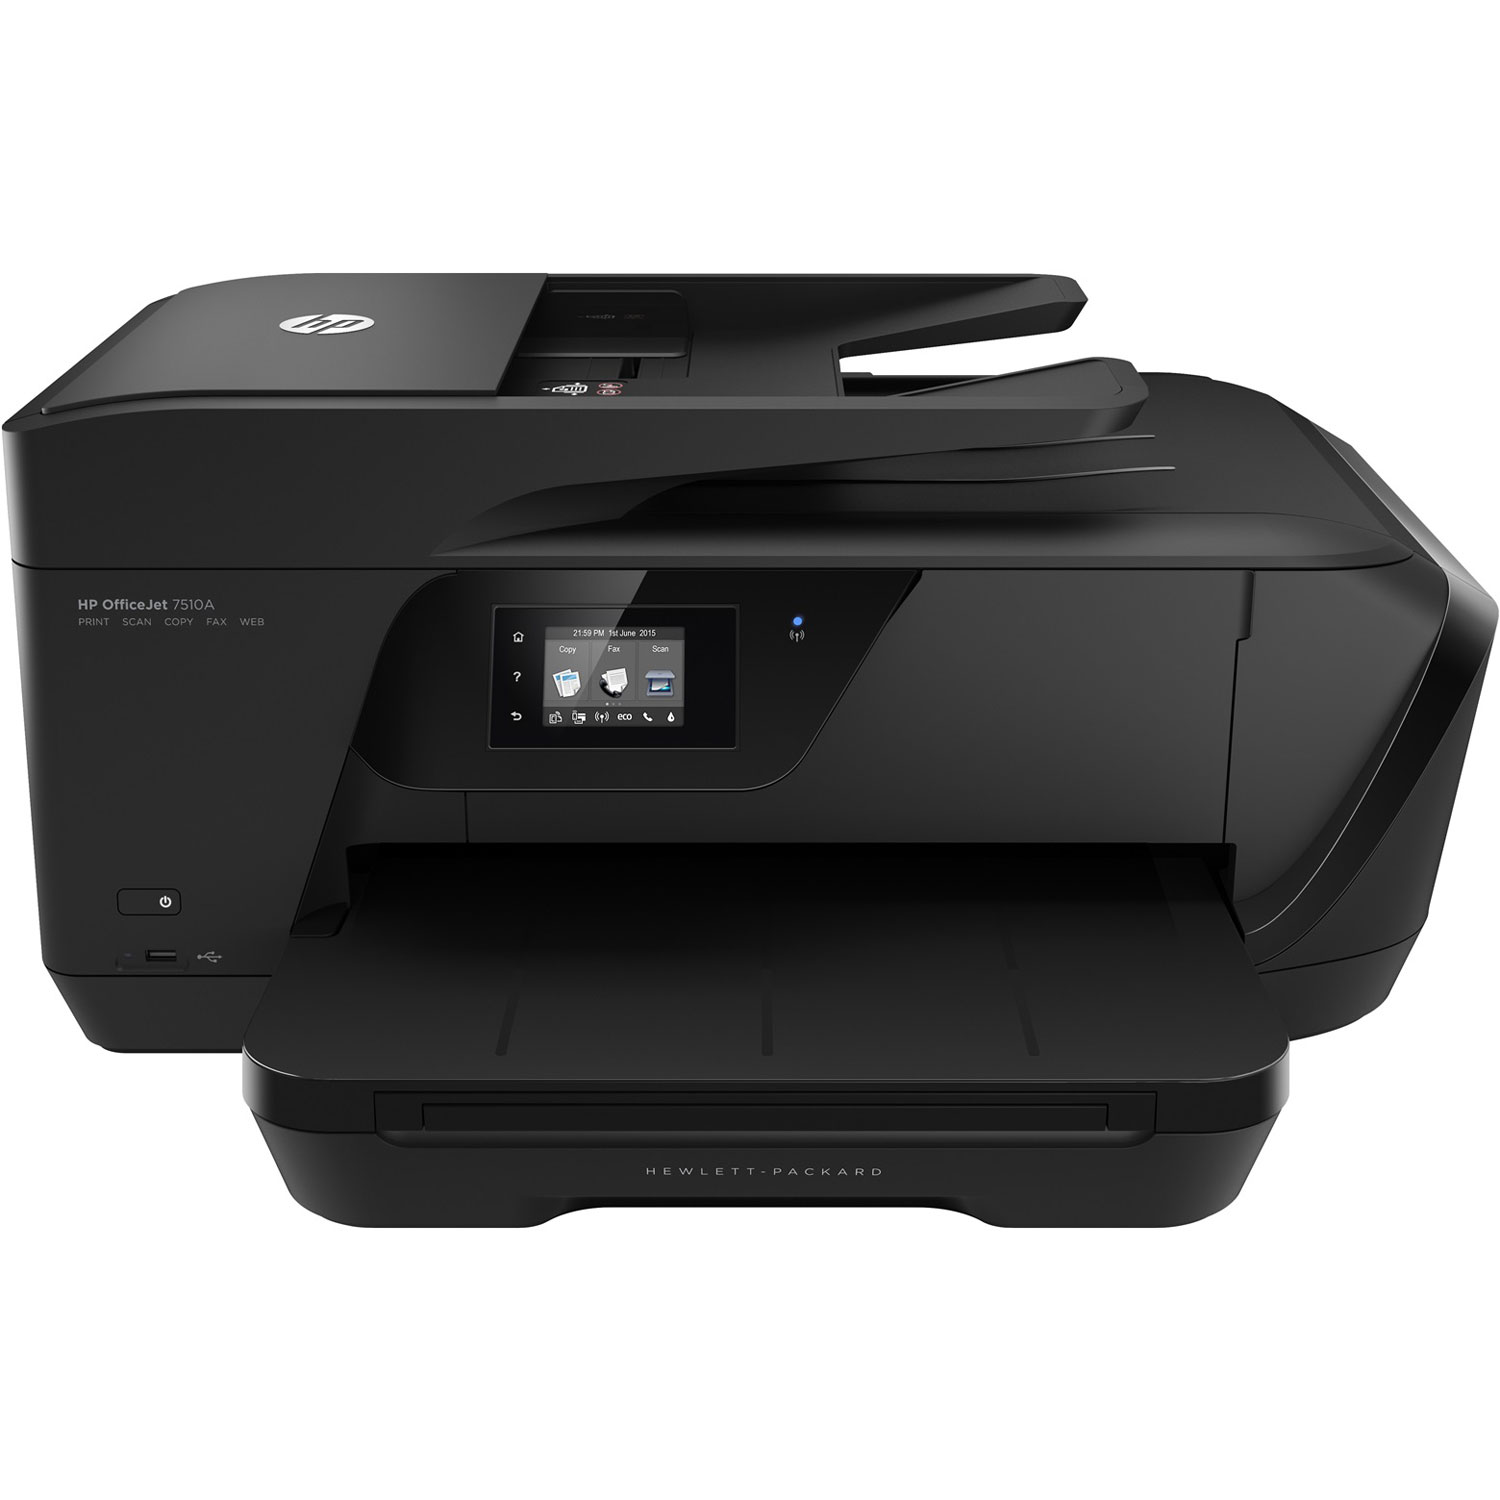 hp officejet 7510 imprimante multifonction hp sur ldlc. Black Bedroom Furniture Sets. Home Design Ideas